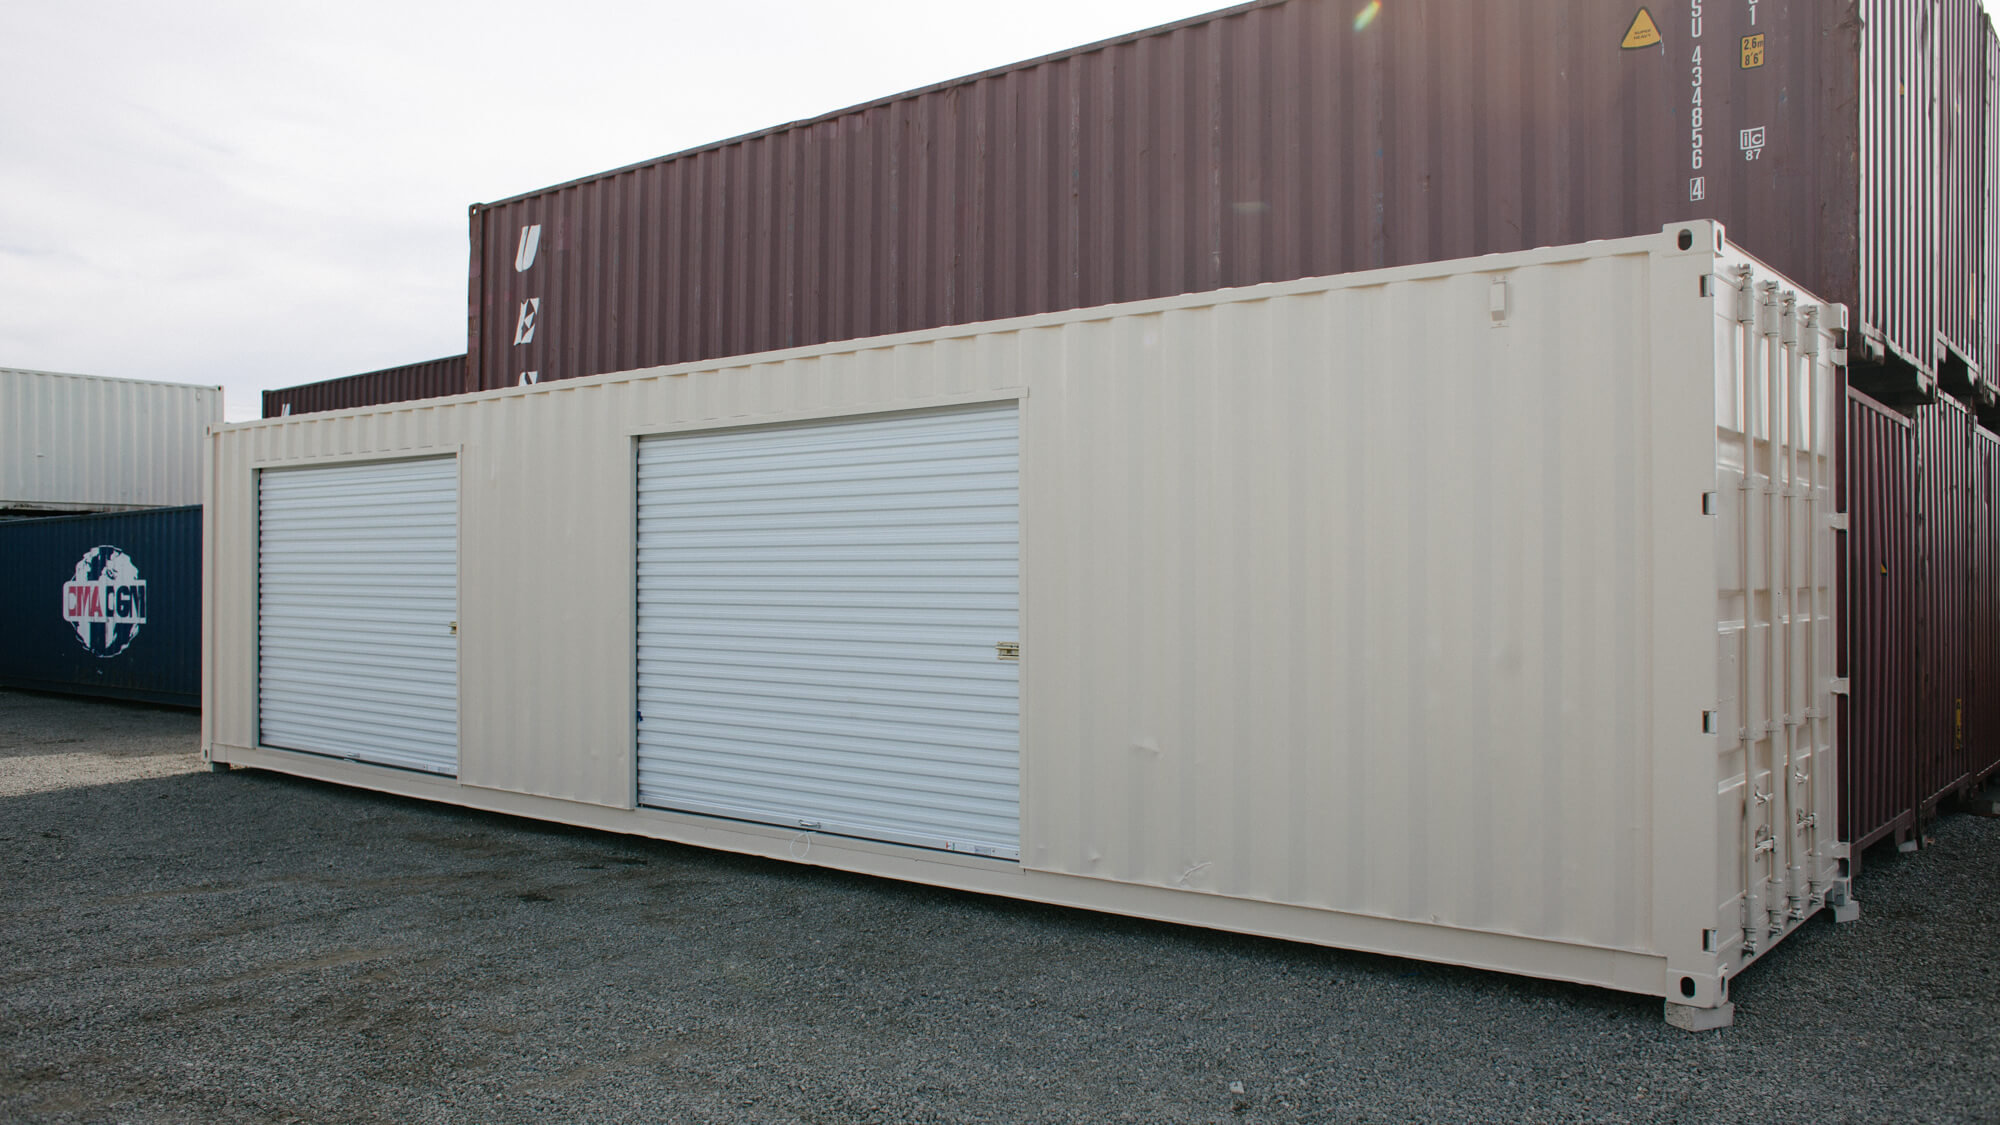 Space Ships Portable Storage ... & Southern Storage Containers - Listitdallas